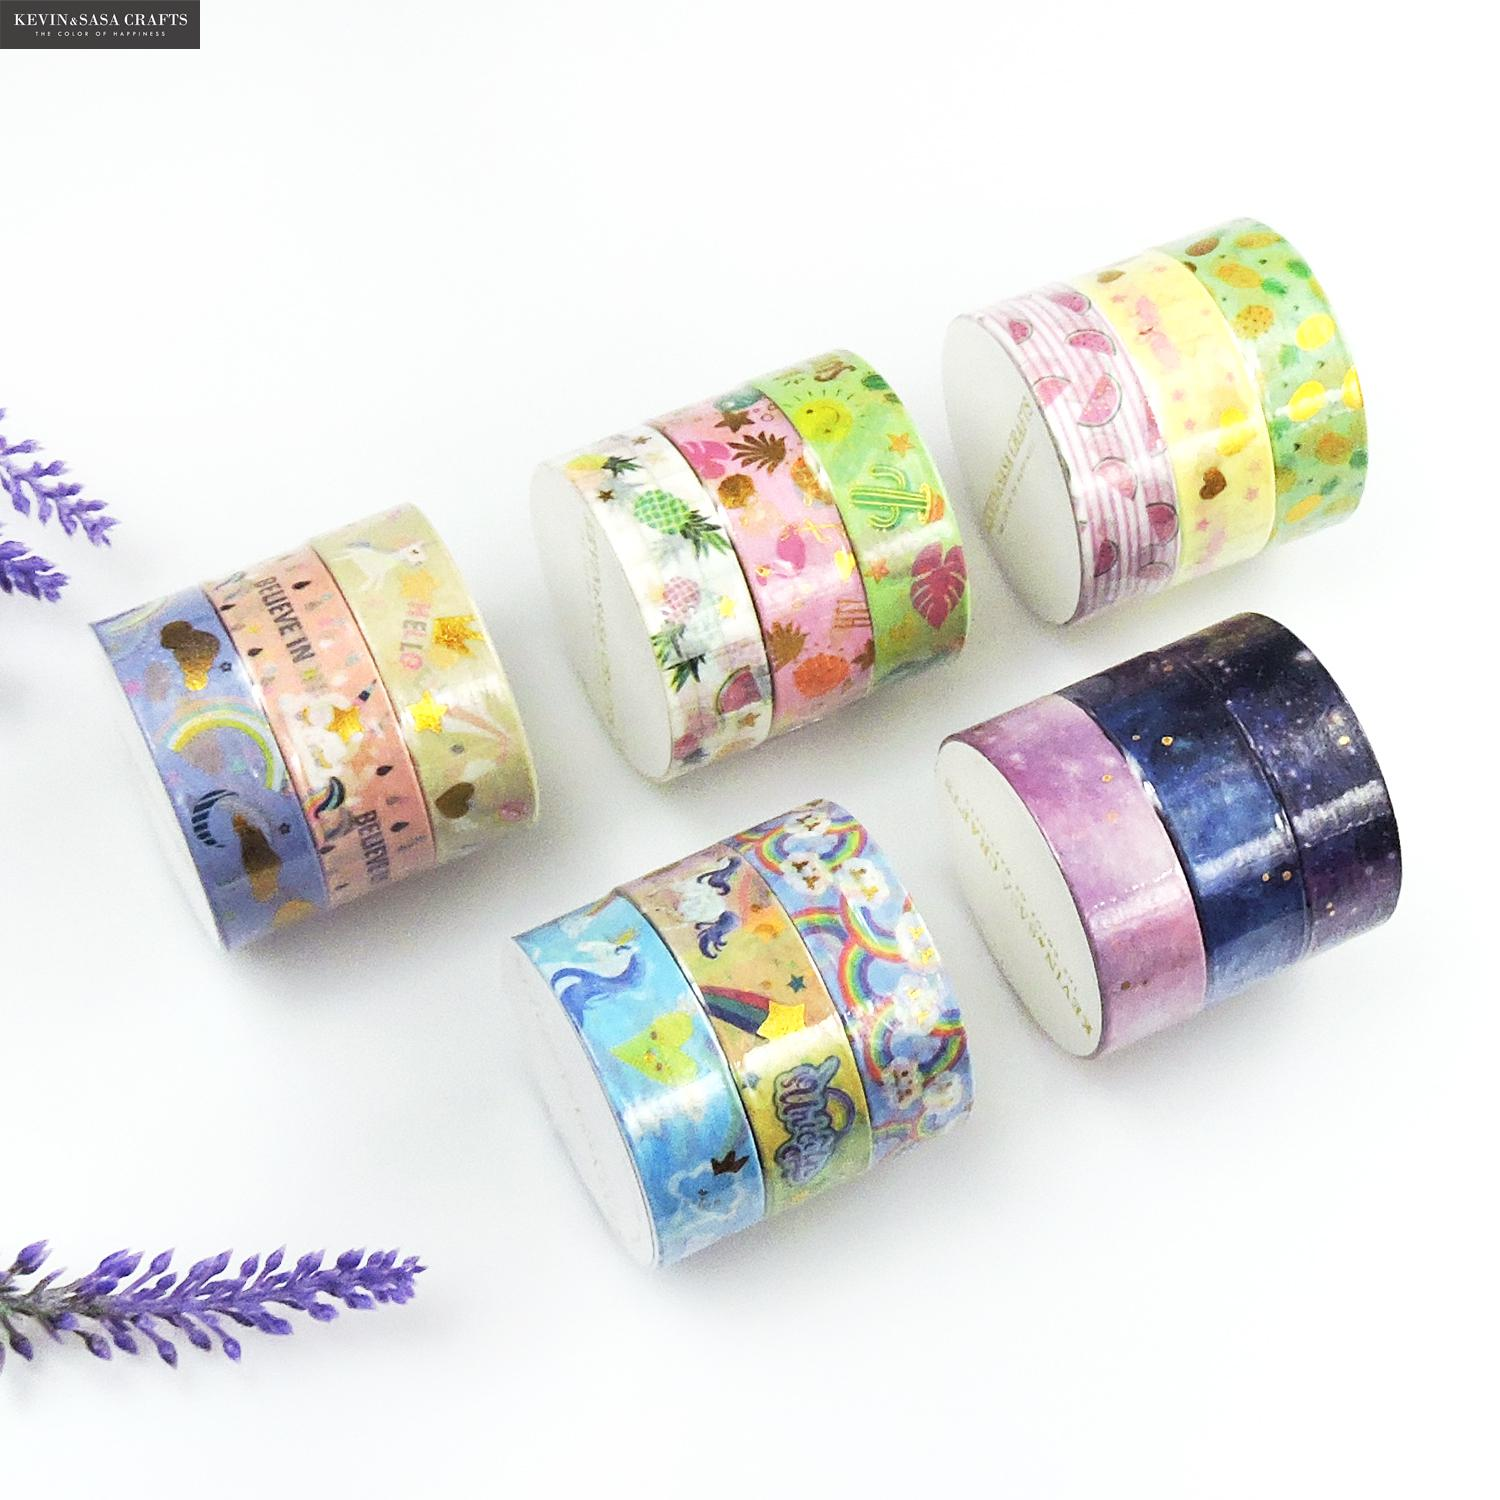 3Rolls/Set Washi Masking Tape Set Animal Fruits Paper Masking Tapes Japanese 15mm x 5m Washi Tape Diy Scrapbooking Sticker Tape 12pcs lot vegetab fruit plant paper masking tape japanese washi tapes set 3cm 5m stickers kawaii school supplies papeleria 7161